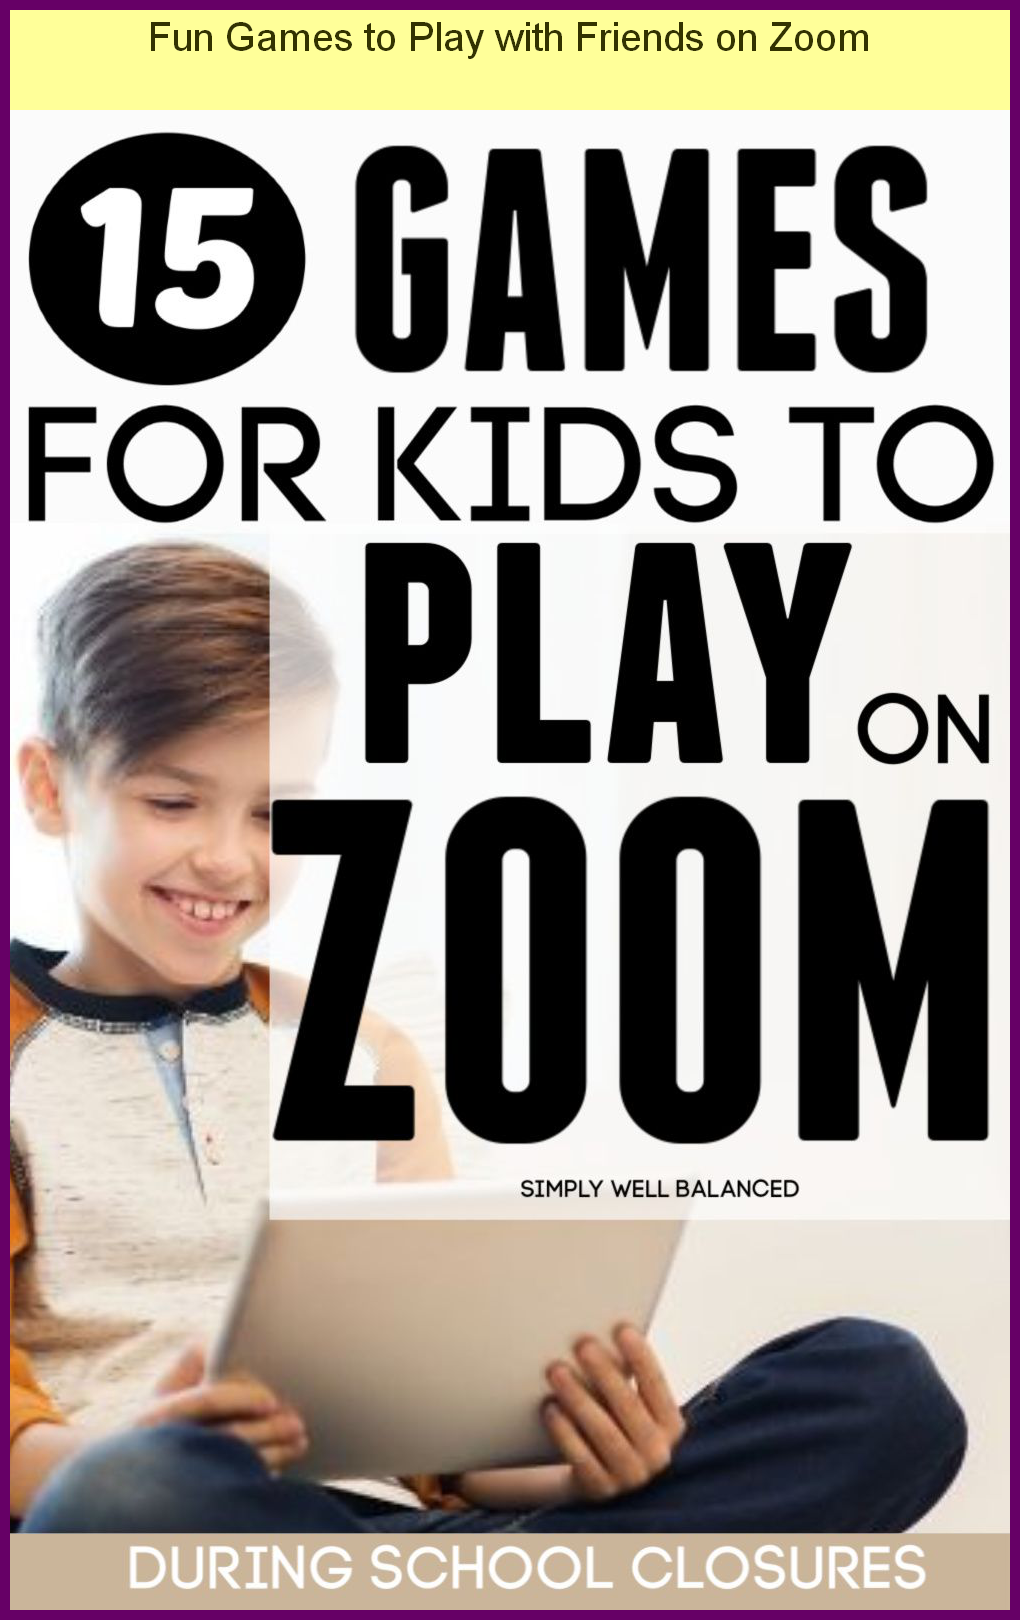 most popular Fun Games to Play with Friends on Zoom in